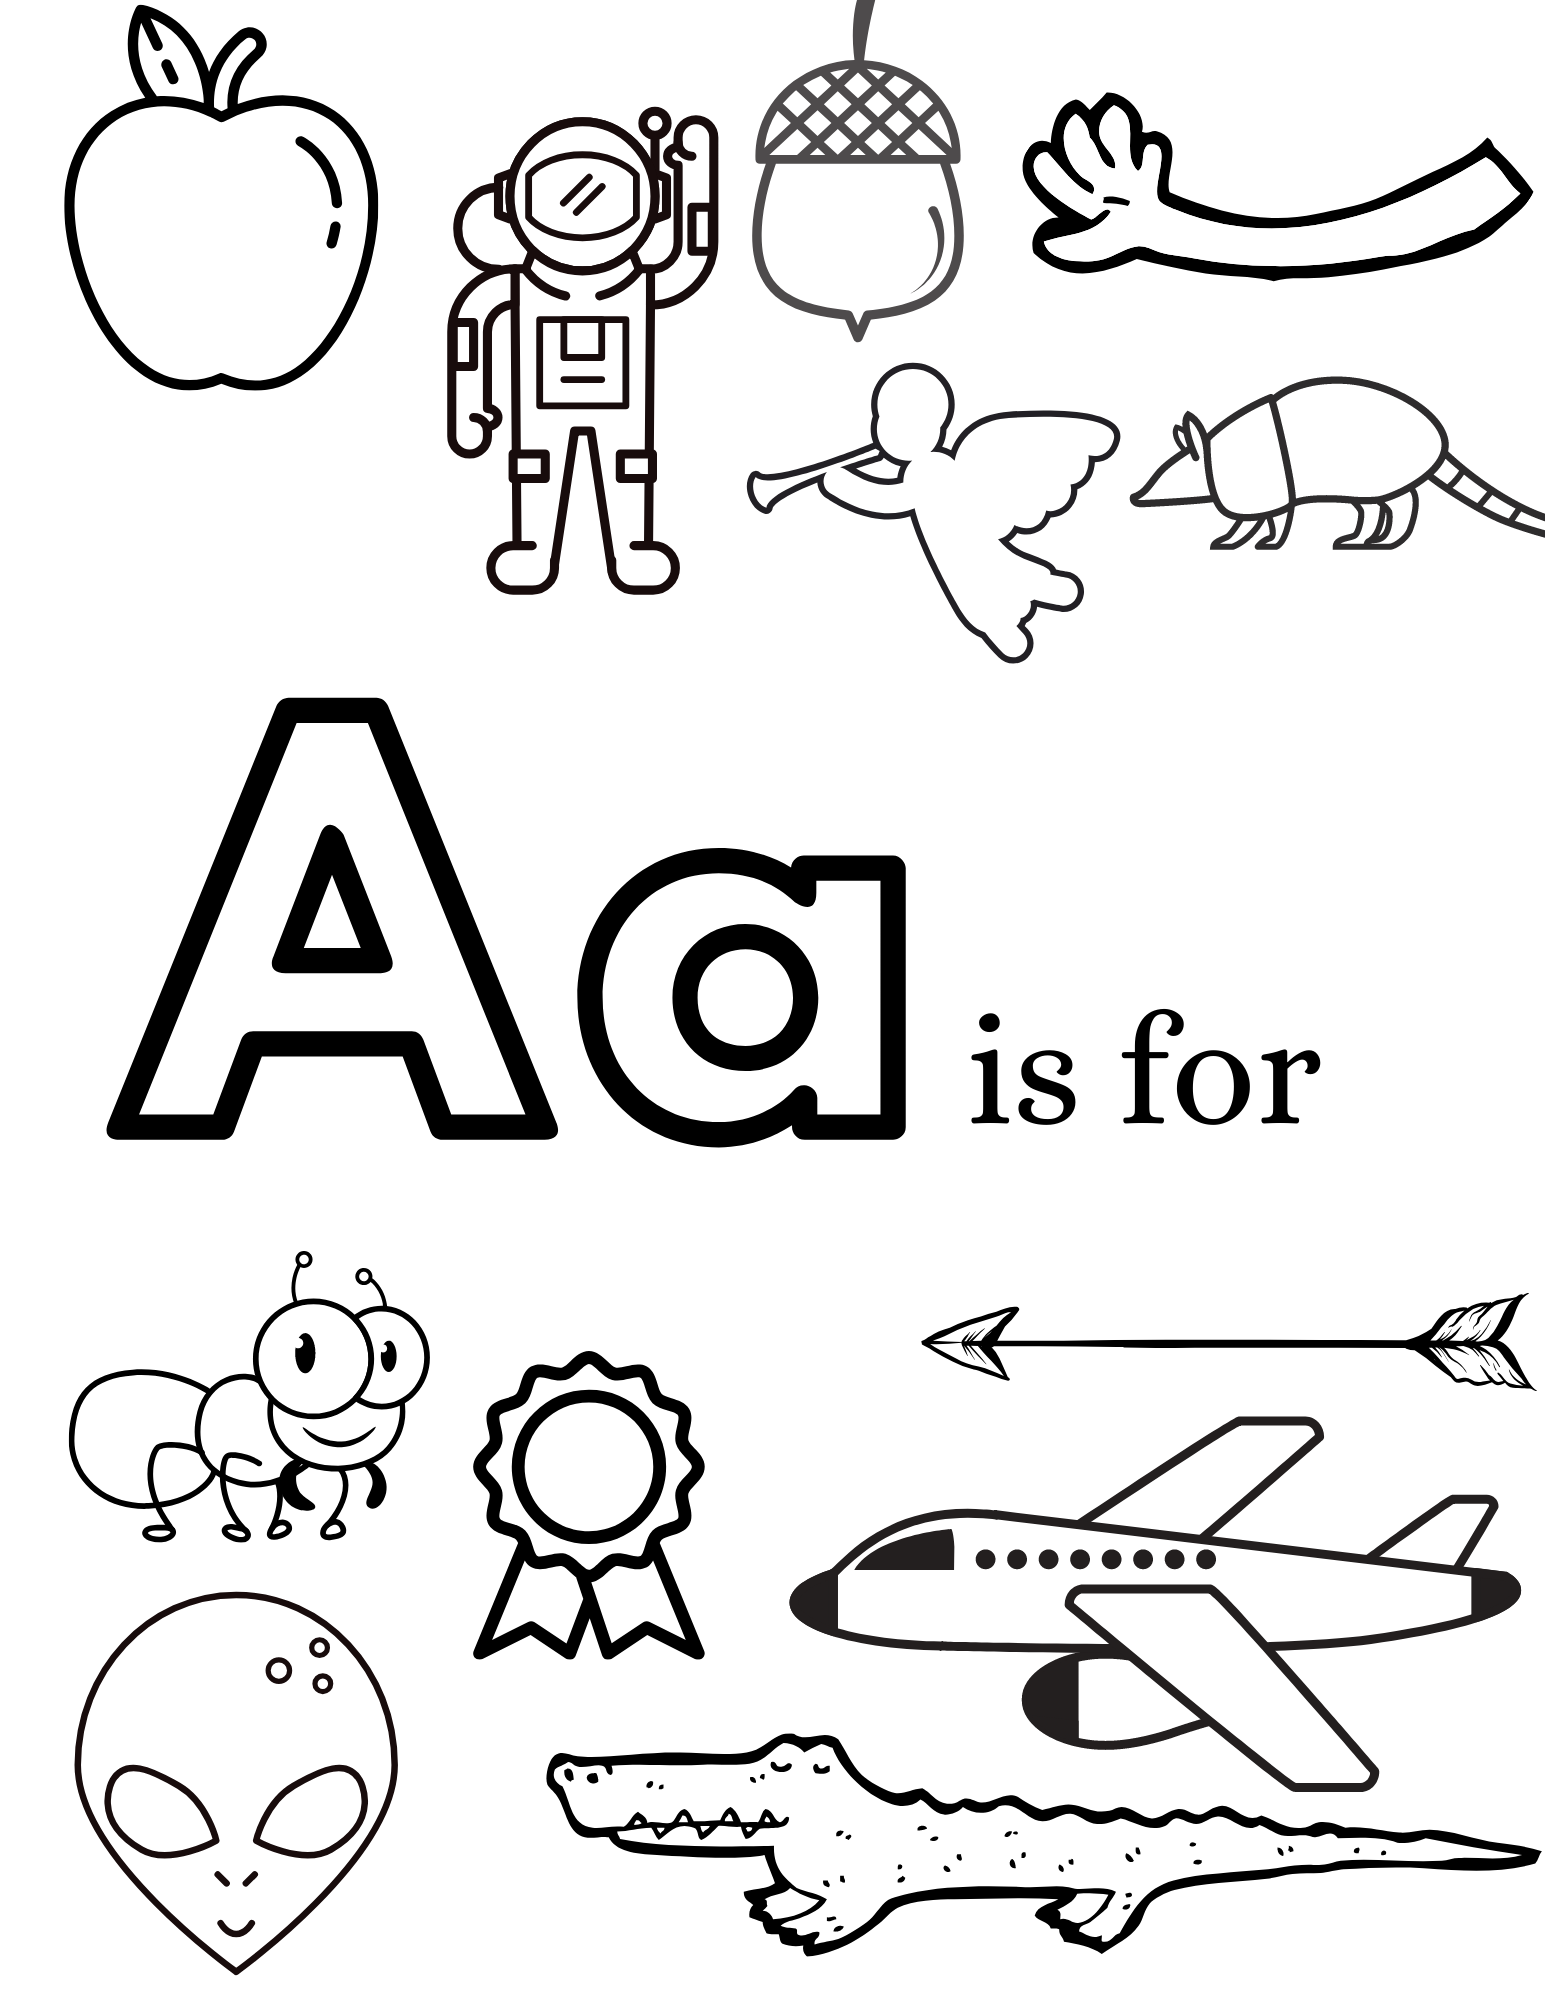 Free Printable Alphabet Coloring Pages Hey Kelly Marie Alphabet Coloring Pages Alphabet Coloring Letter A Coloring Pages